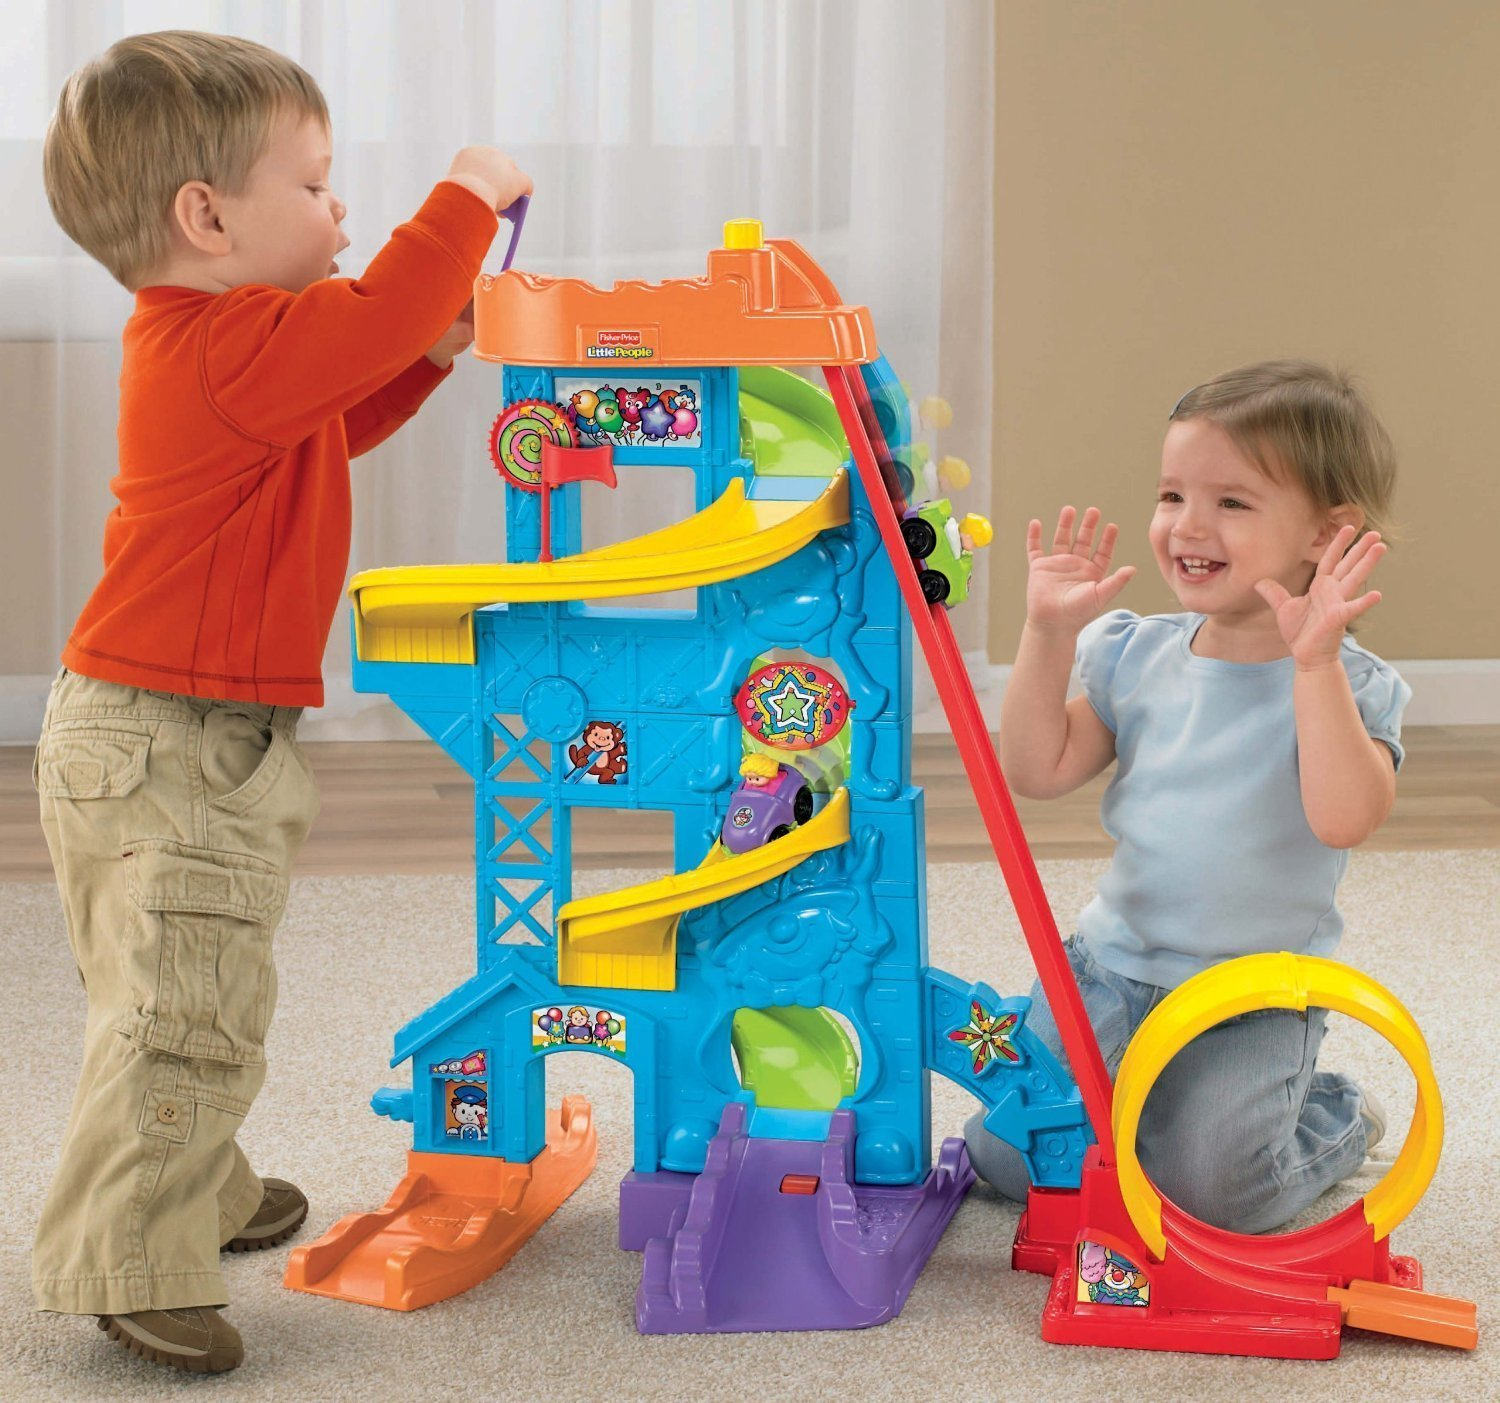 Best Ts And Toys For 3 Year Old Boys